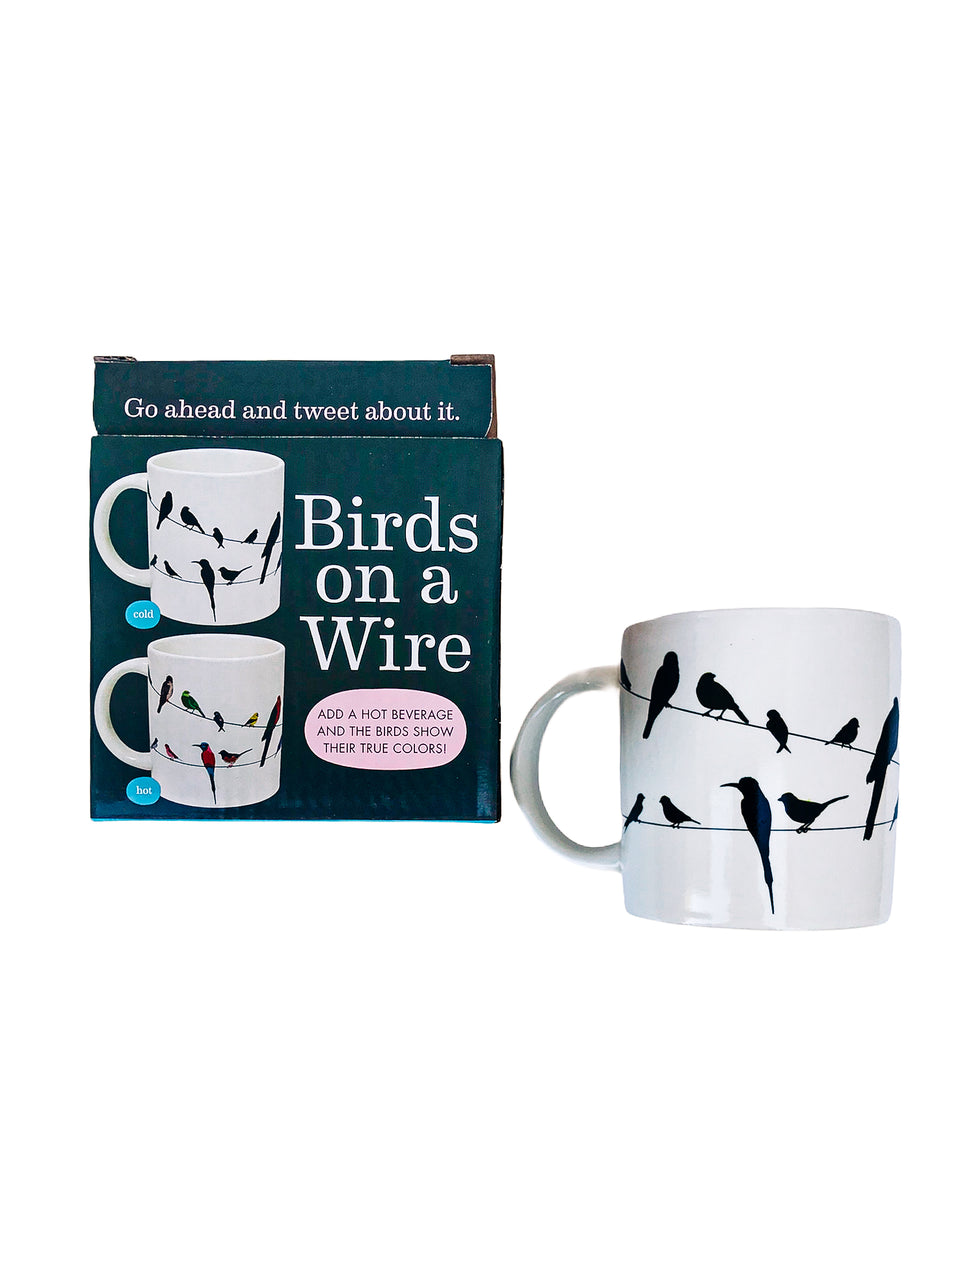 Re-appearing Bird Mug